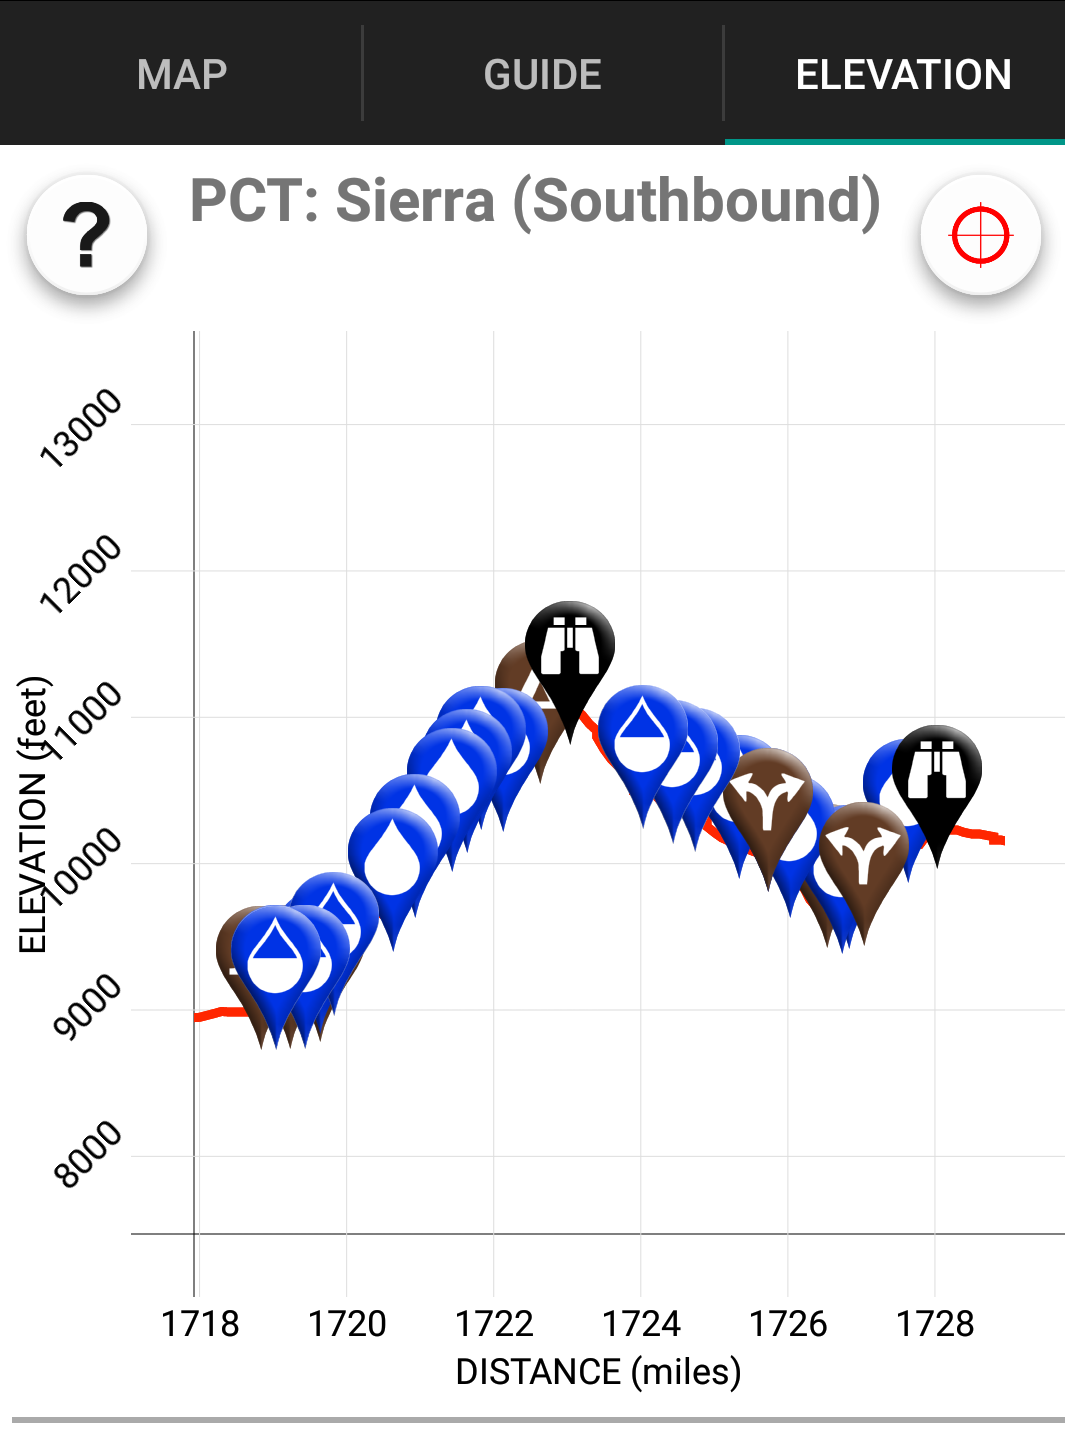 Elevation: It's a little up and down in the Sierras.